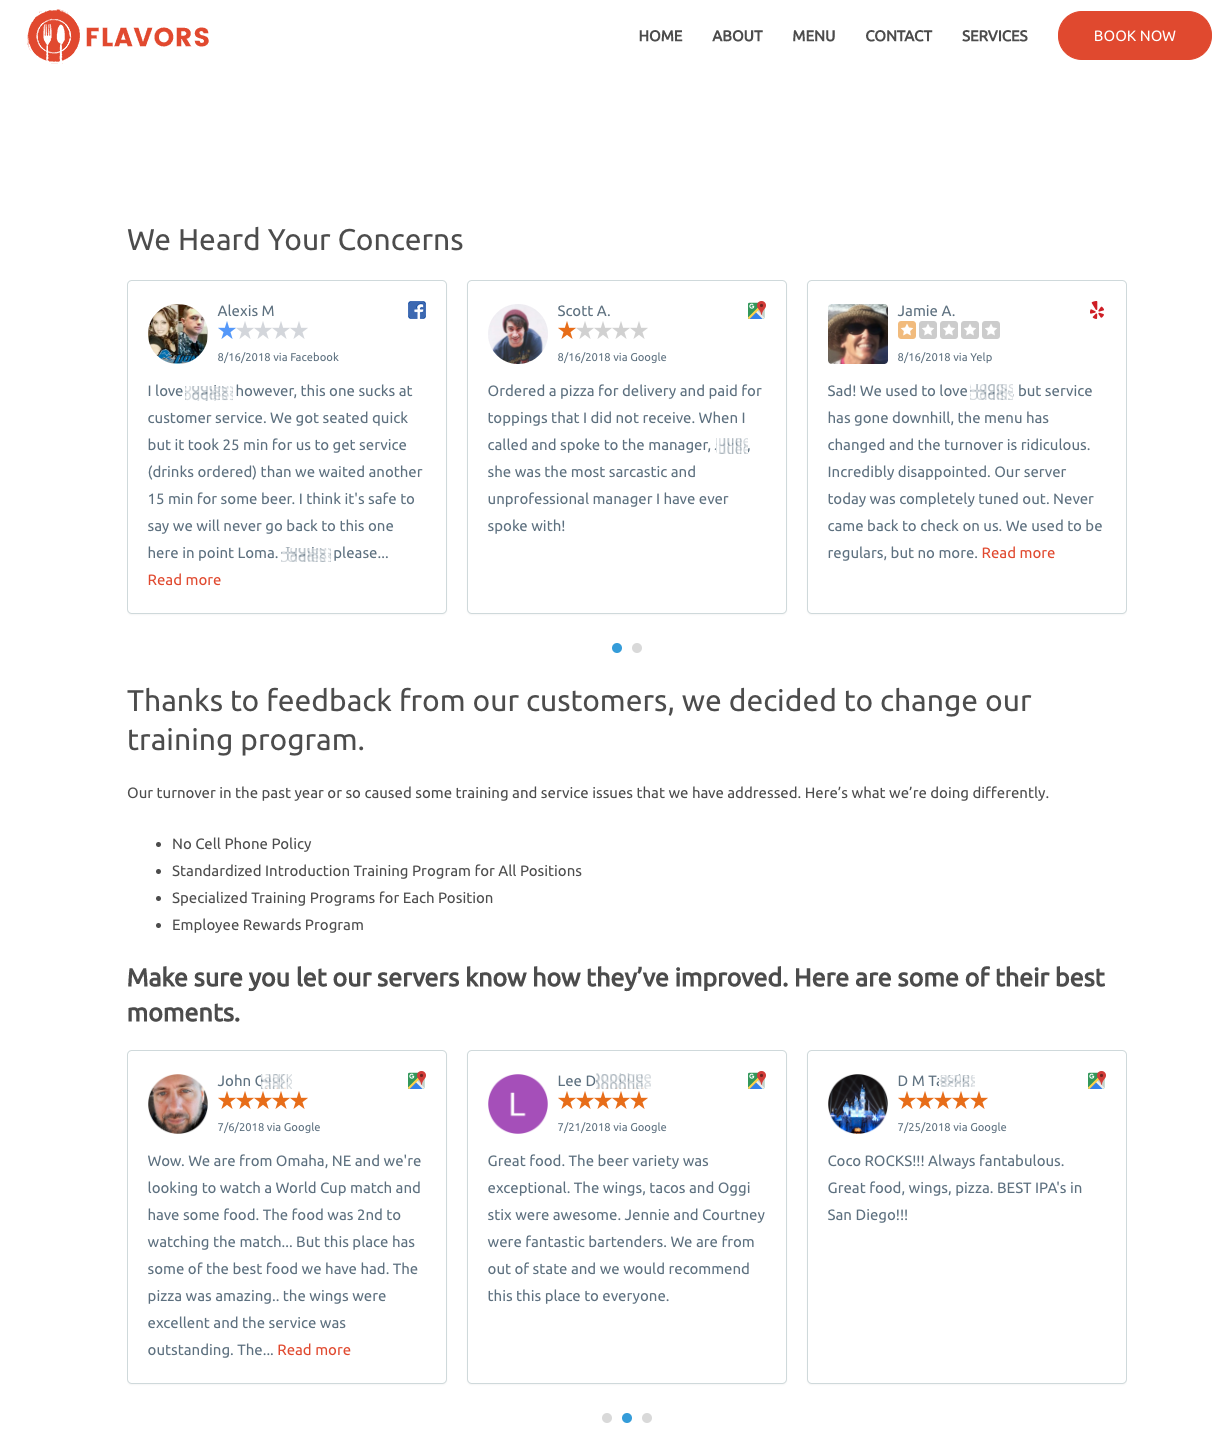 We Heard Your Concerns Page filled with negative reviews and a response to them.